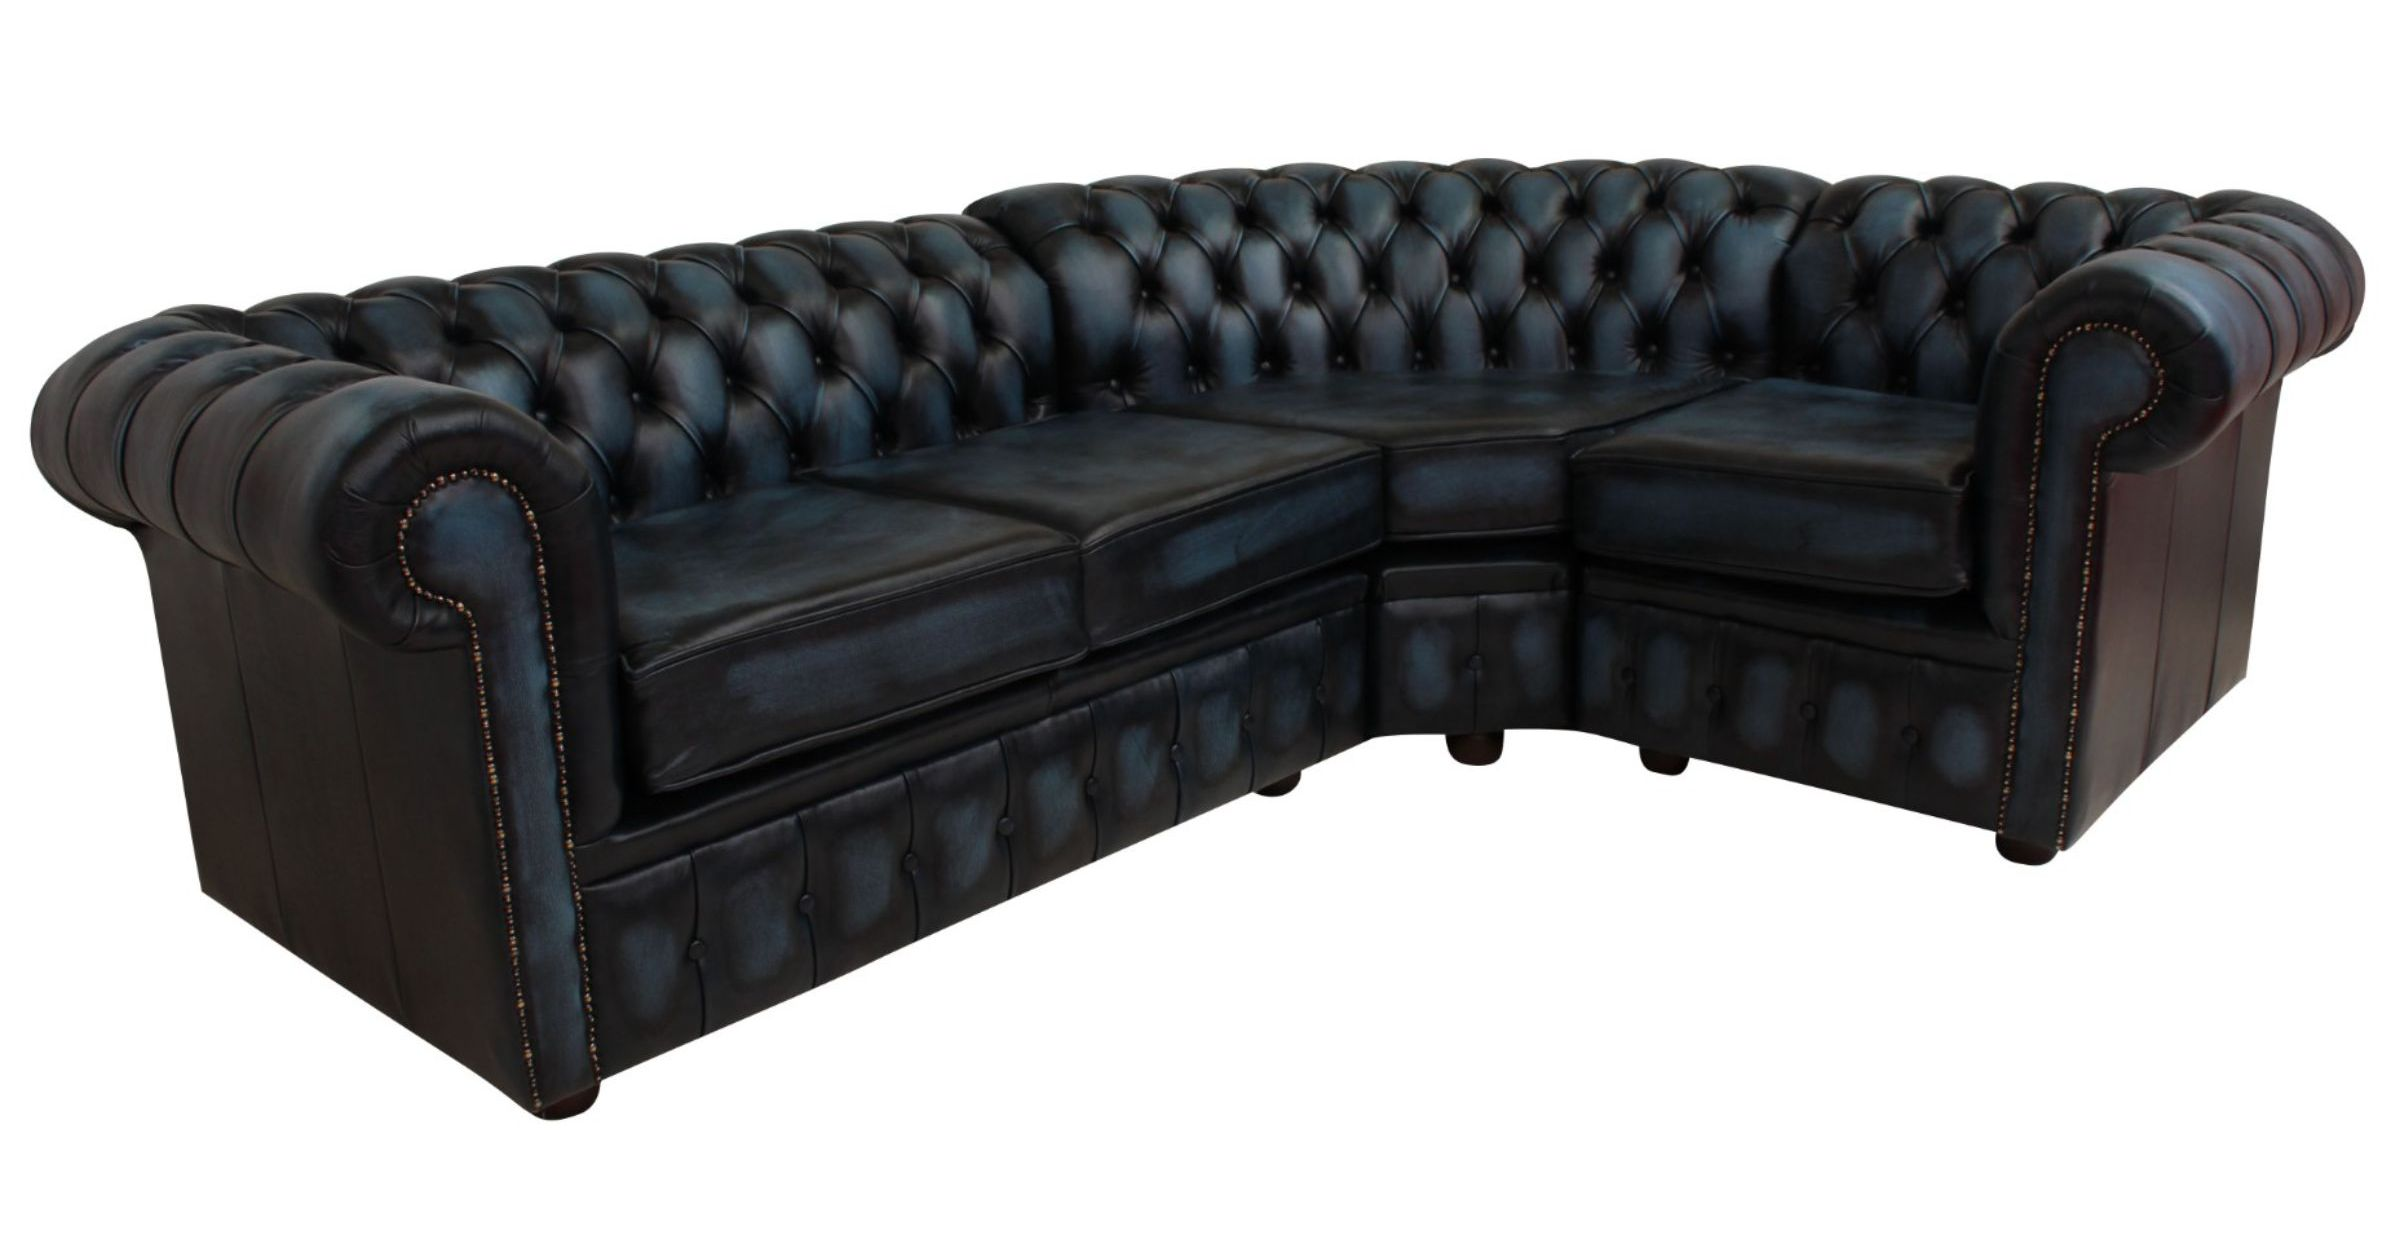 4 Seater Chesterfield Corner Sofa Chesterfield Corner Sofa 2 Seater + Corner + 1 Seater